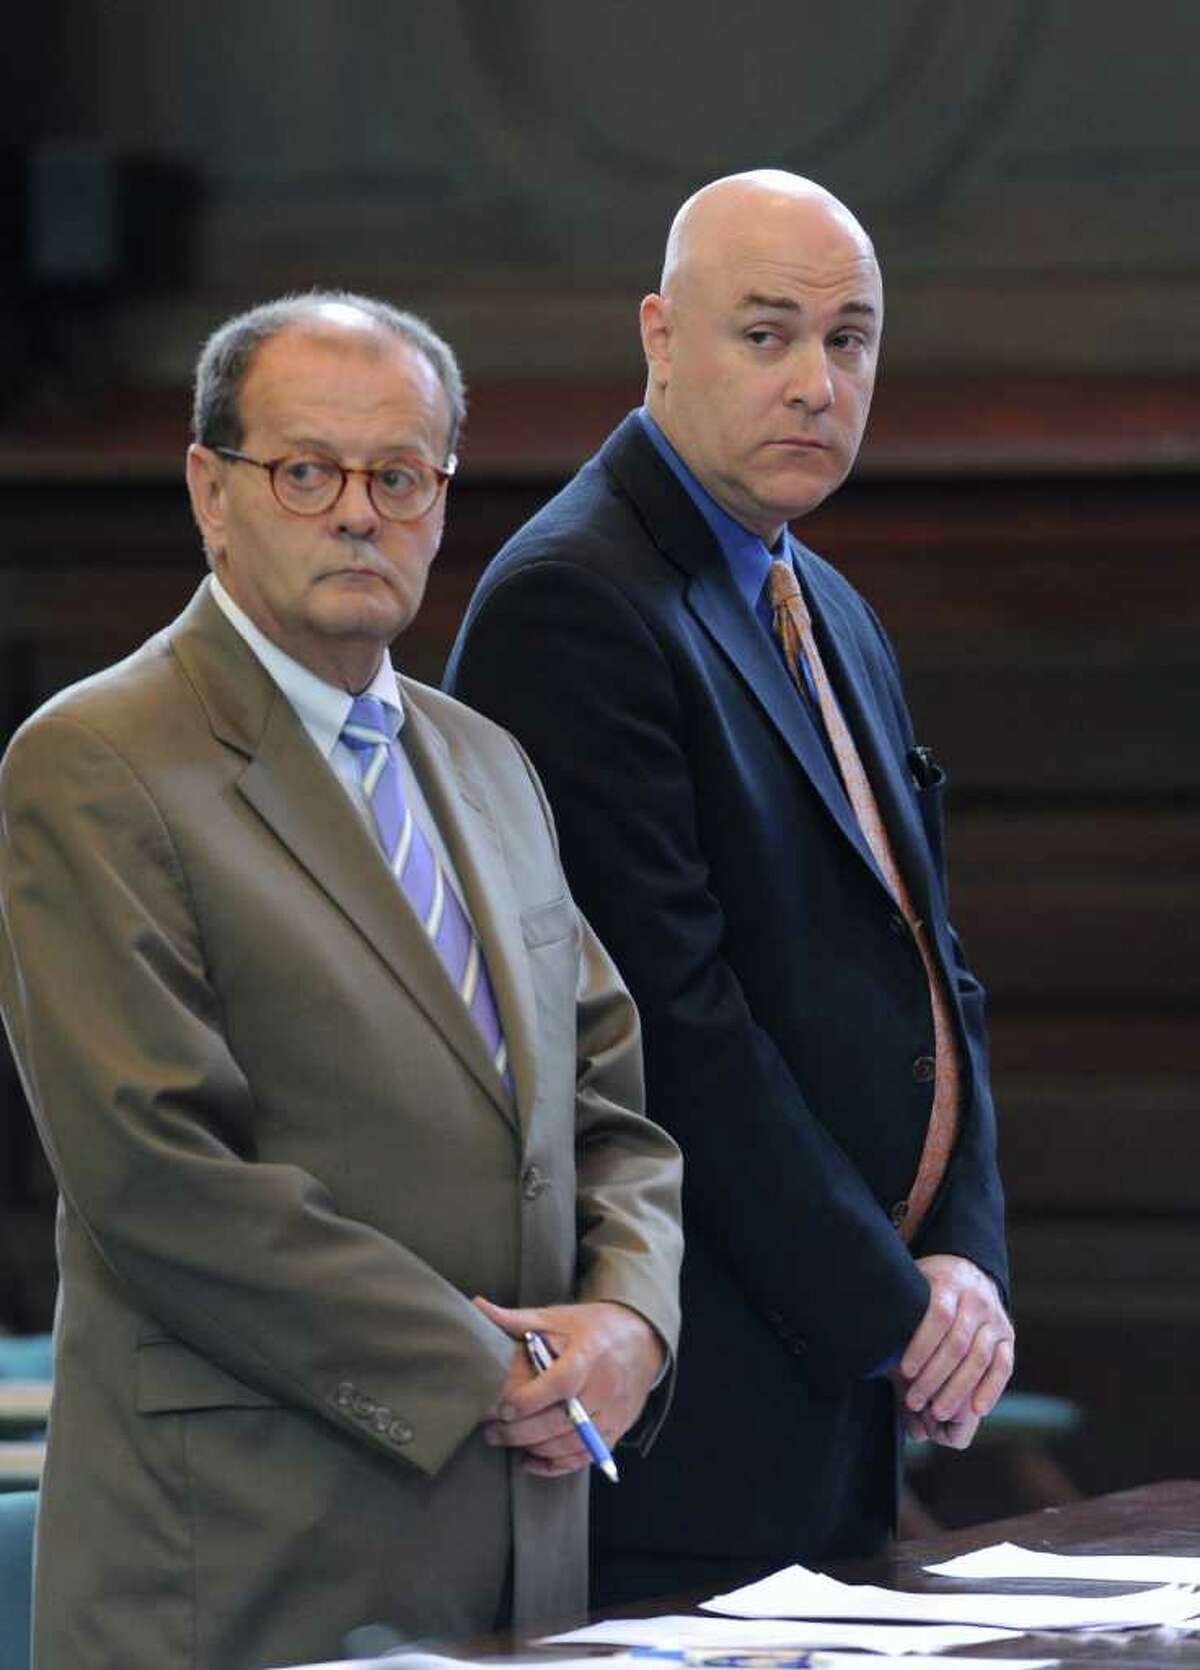 Former Troy City Clerk William A. McInerney, right, a Democrat, admitted Friday that he signed a voter's signature to a Working Families Party absentee ballot in 2009 to steer the vote to his party's candidate in front of Judge George Pulver in Rensselaer County Court in Troy, N.Y. Aug 26, 2011. Standing with McInerney is his attorney James Long. (Skip Dickstein / Times Union)